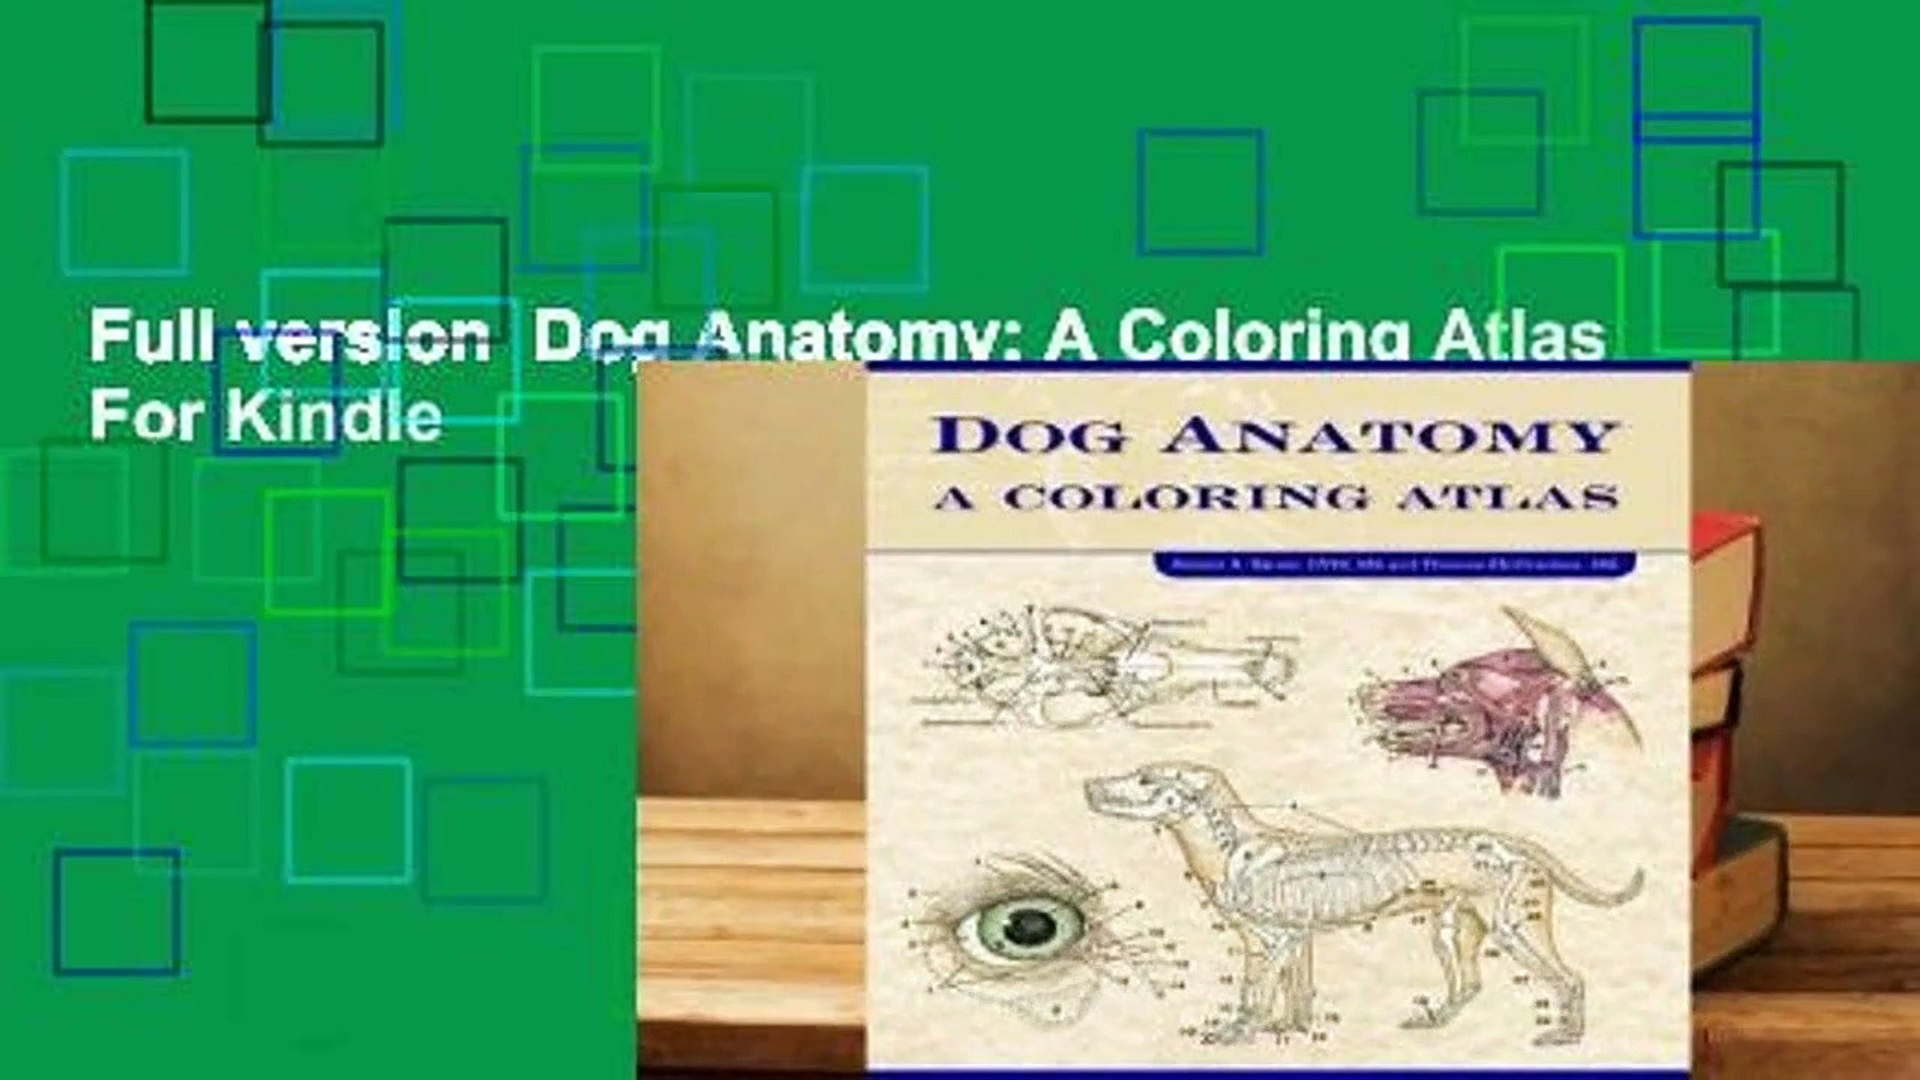 Full version Dog Anatomy: A Coloring Atlas For Kindle